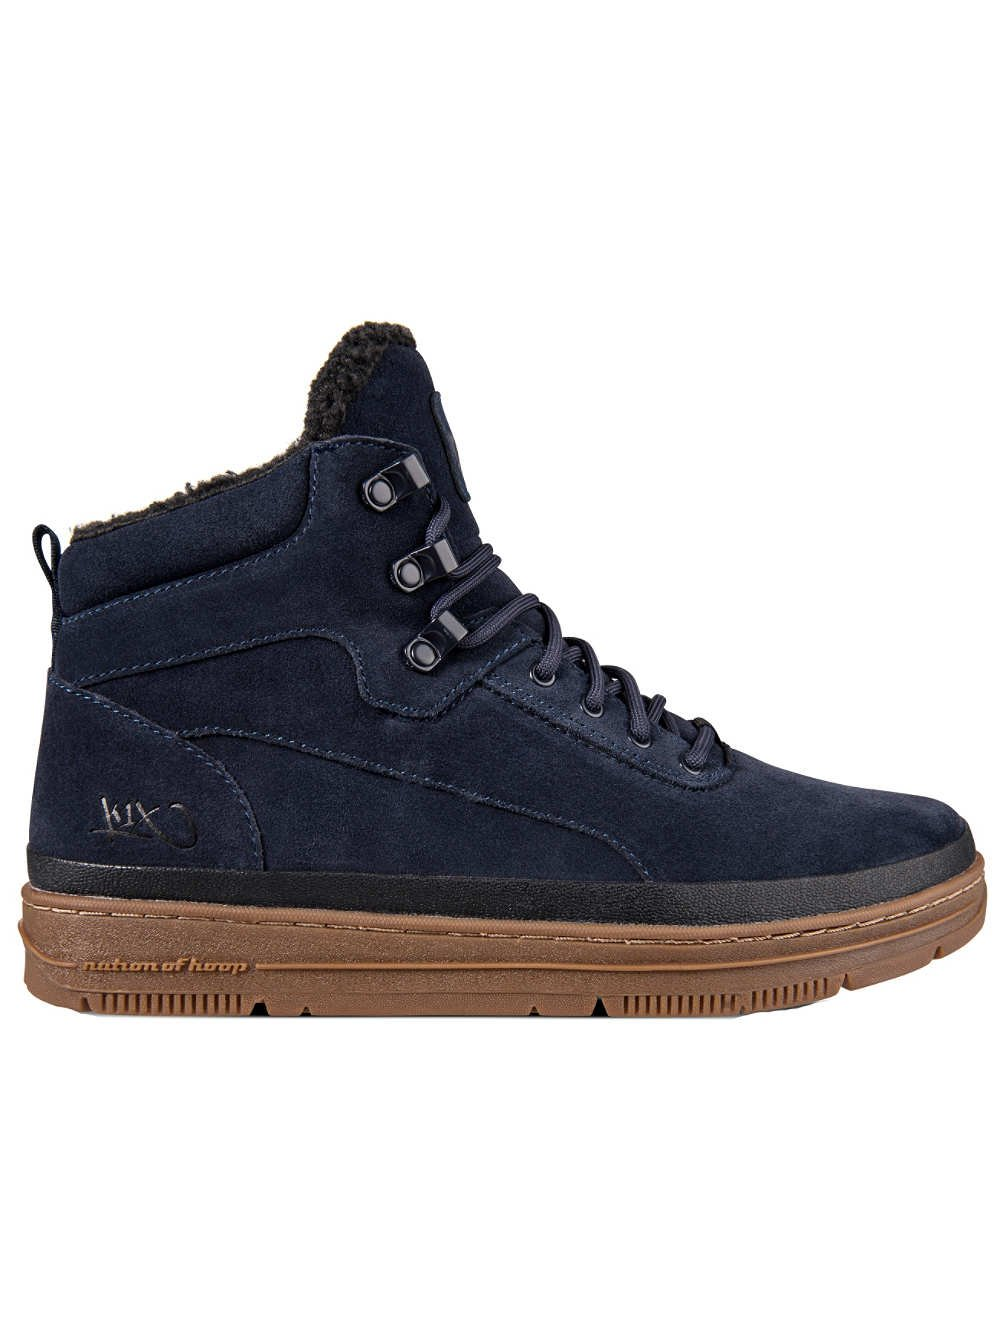 PARK AUTHORITY GK 3000 Dark Brown  42 1/2|navy